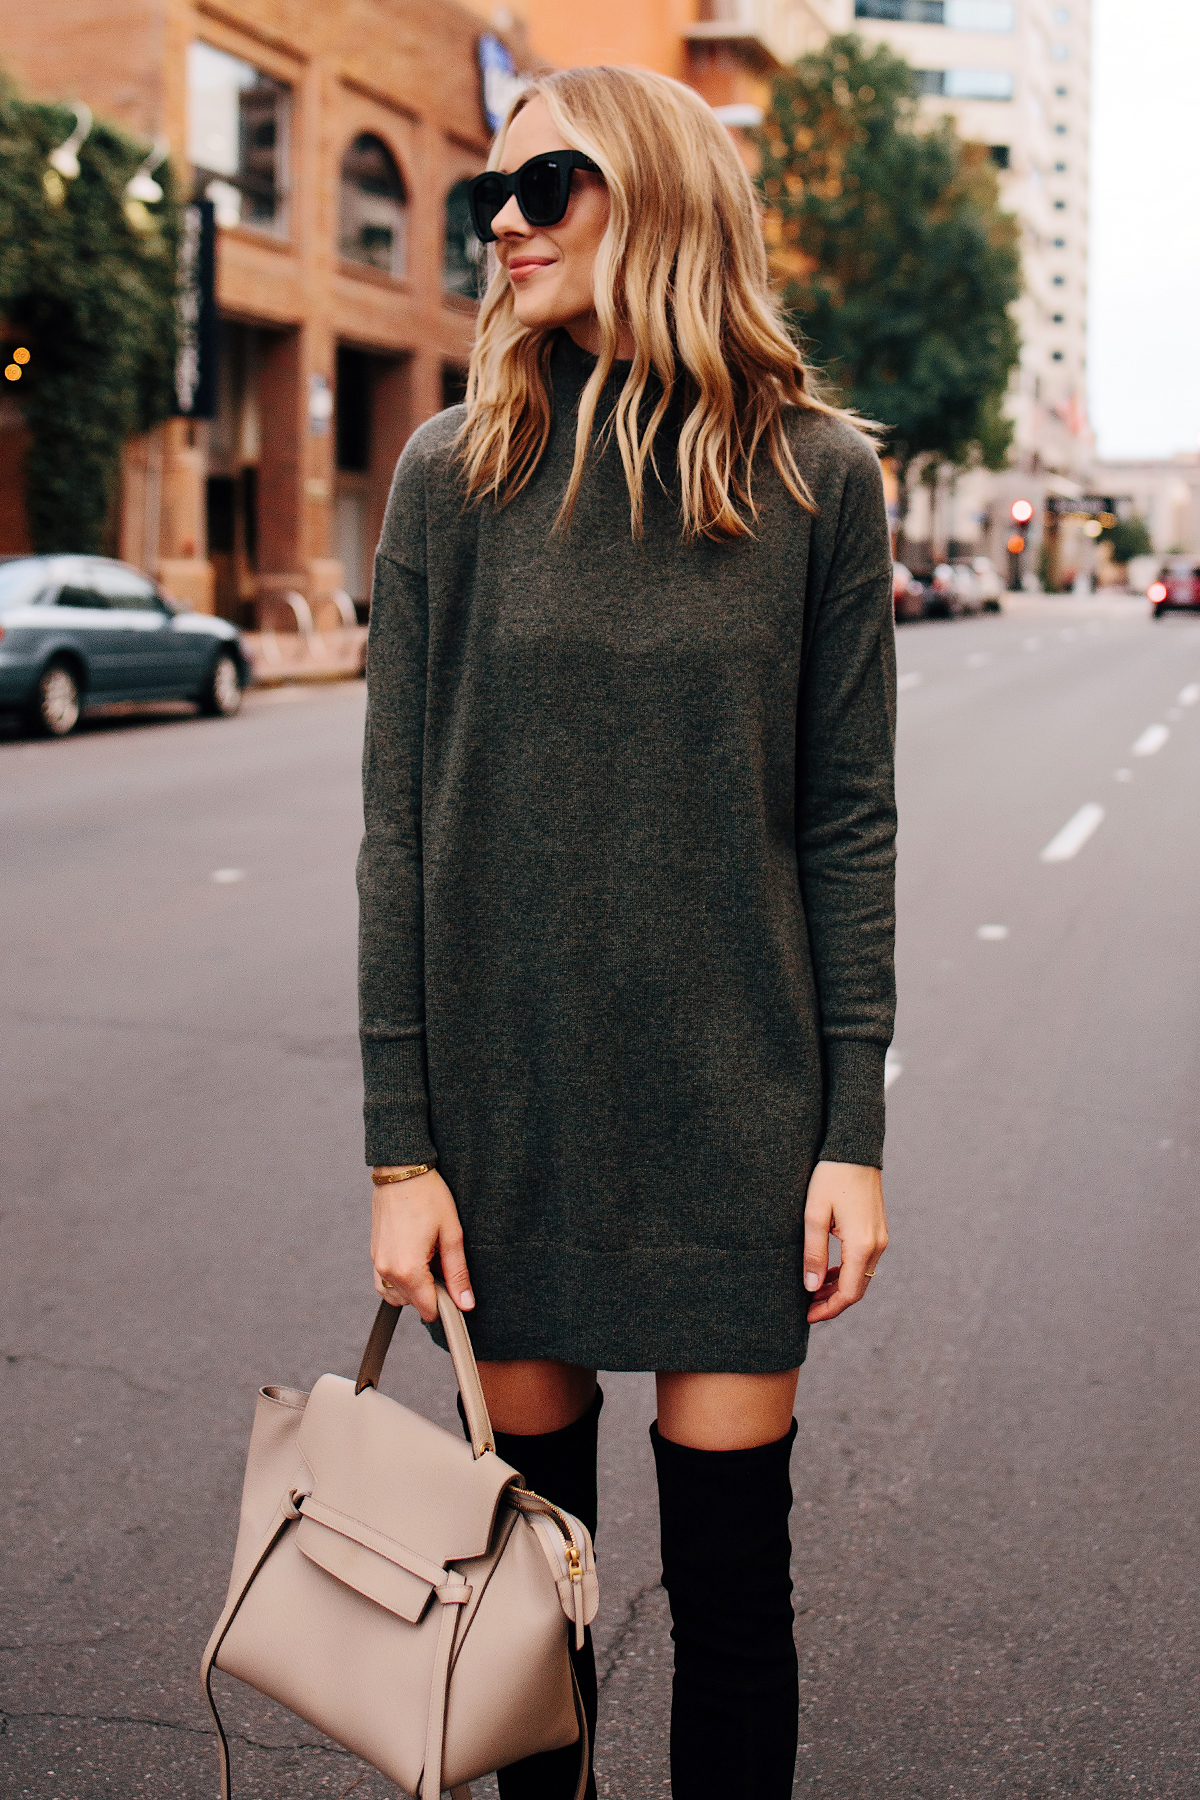 Blonde Woman Wearing Everlane Cashmere Sweater Dress Celine Mini Belt Bag Black OTK Boots Outfit Fashion Jackson San Diego Fashion Blogger Street Style